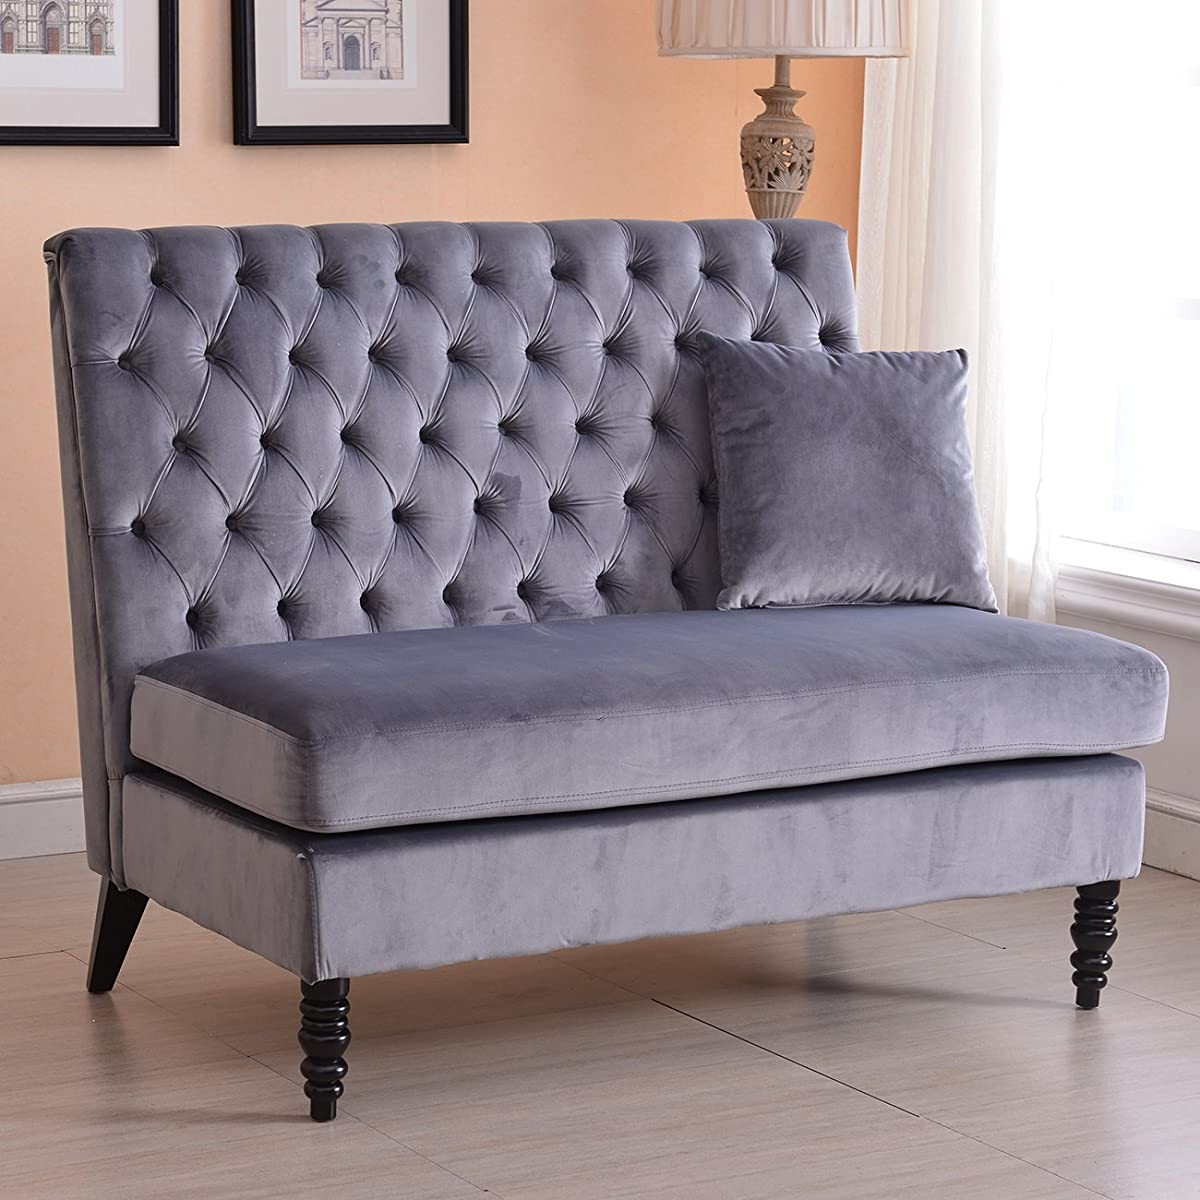 Bedroom Bench Use Bedroom Design Images Bedroom Furniture Sets Most Romantic Bedroom Paint Colors: Velvet Modern Tufted Settee Bench Bedroom Sofa High Back